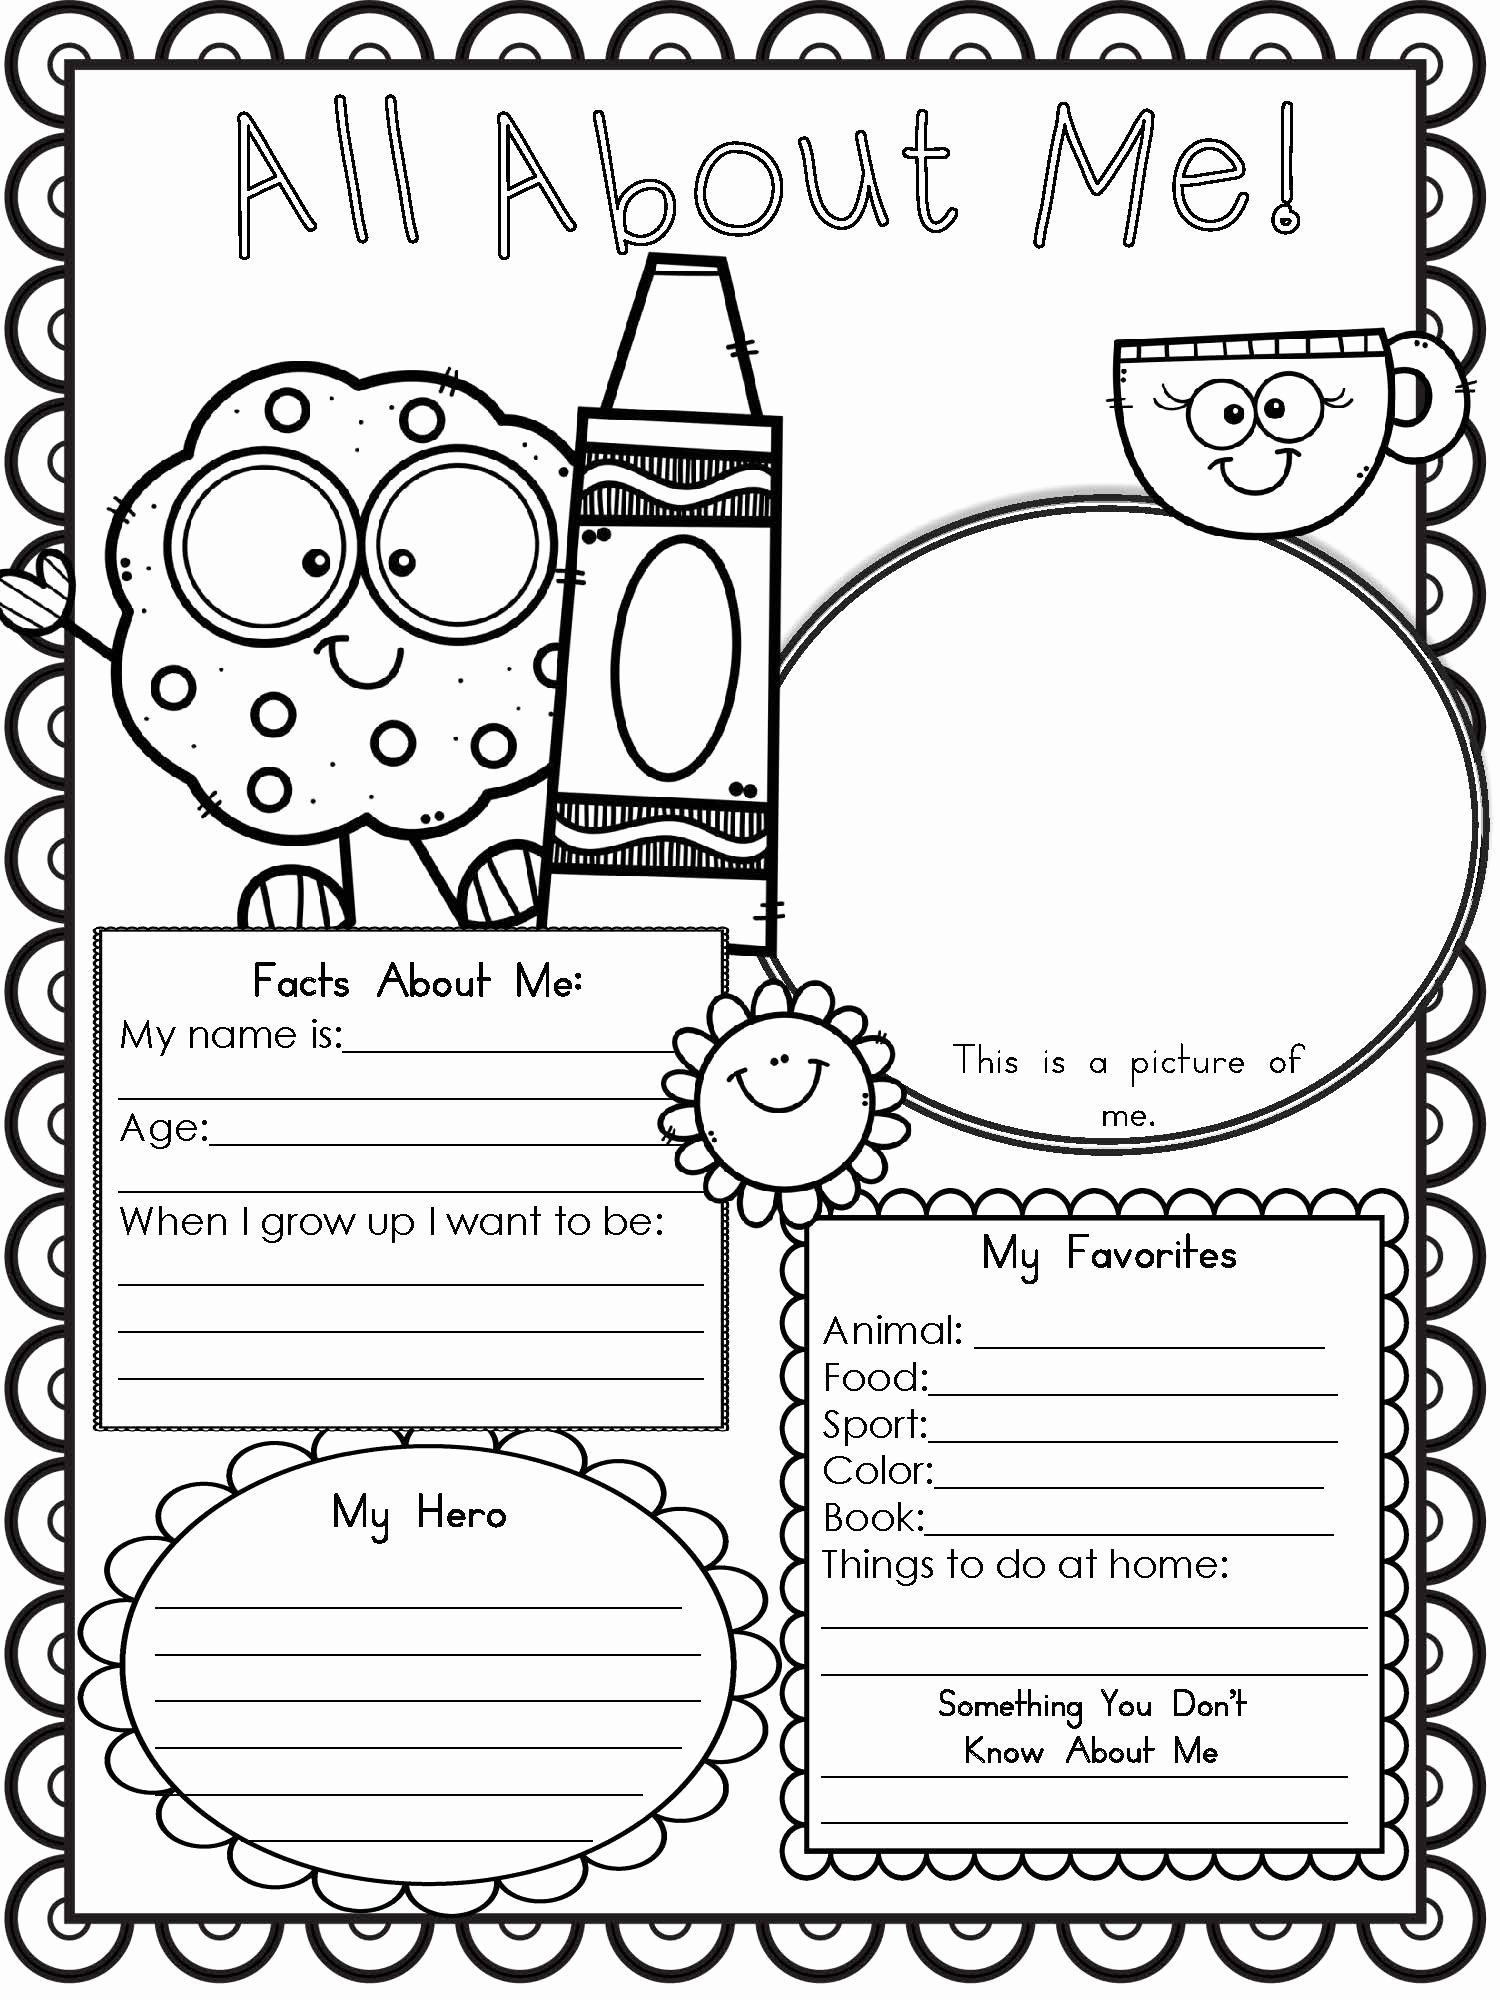 All About Me Worksheets for Preschoolers top Free Printable All About Me Worksheet Modern Homeschool Family